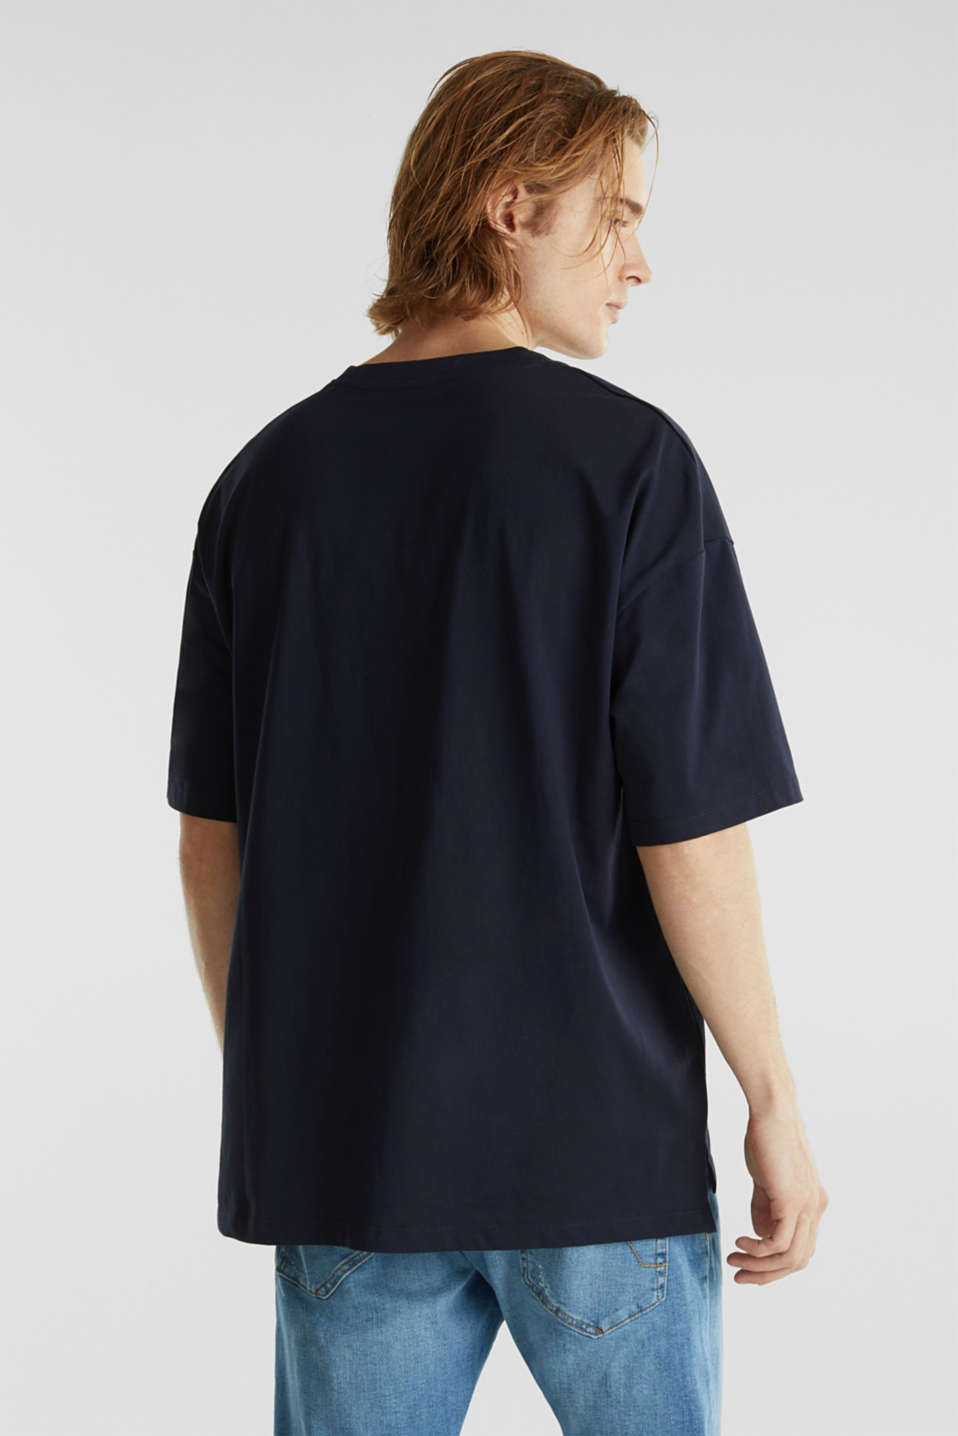 Oversized top in cotton jersey, NAVY, detail image number 3